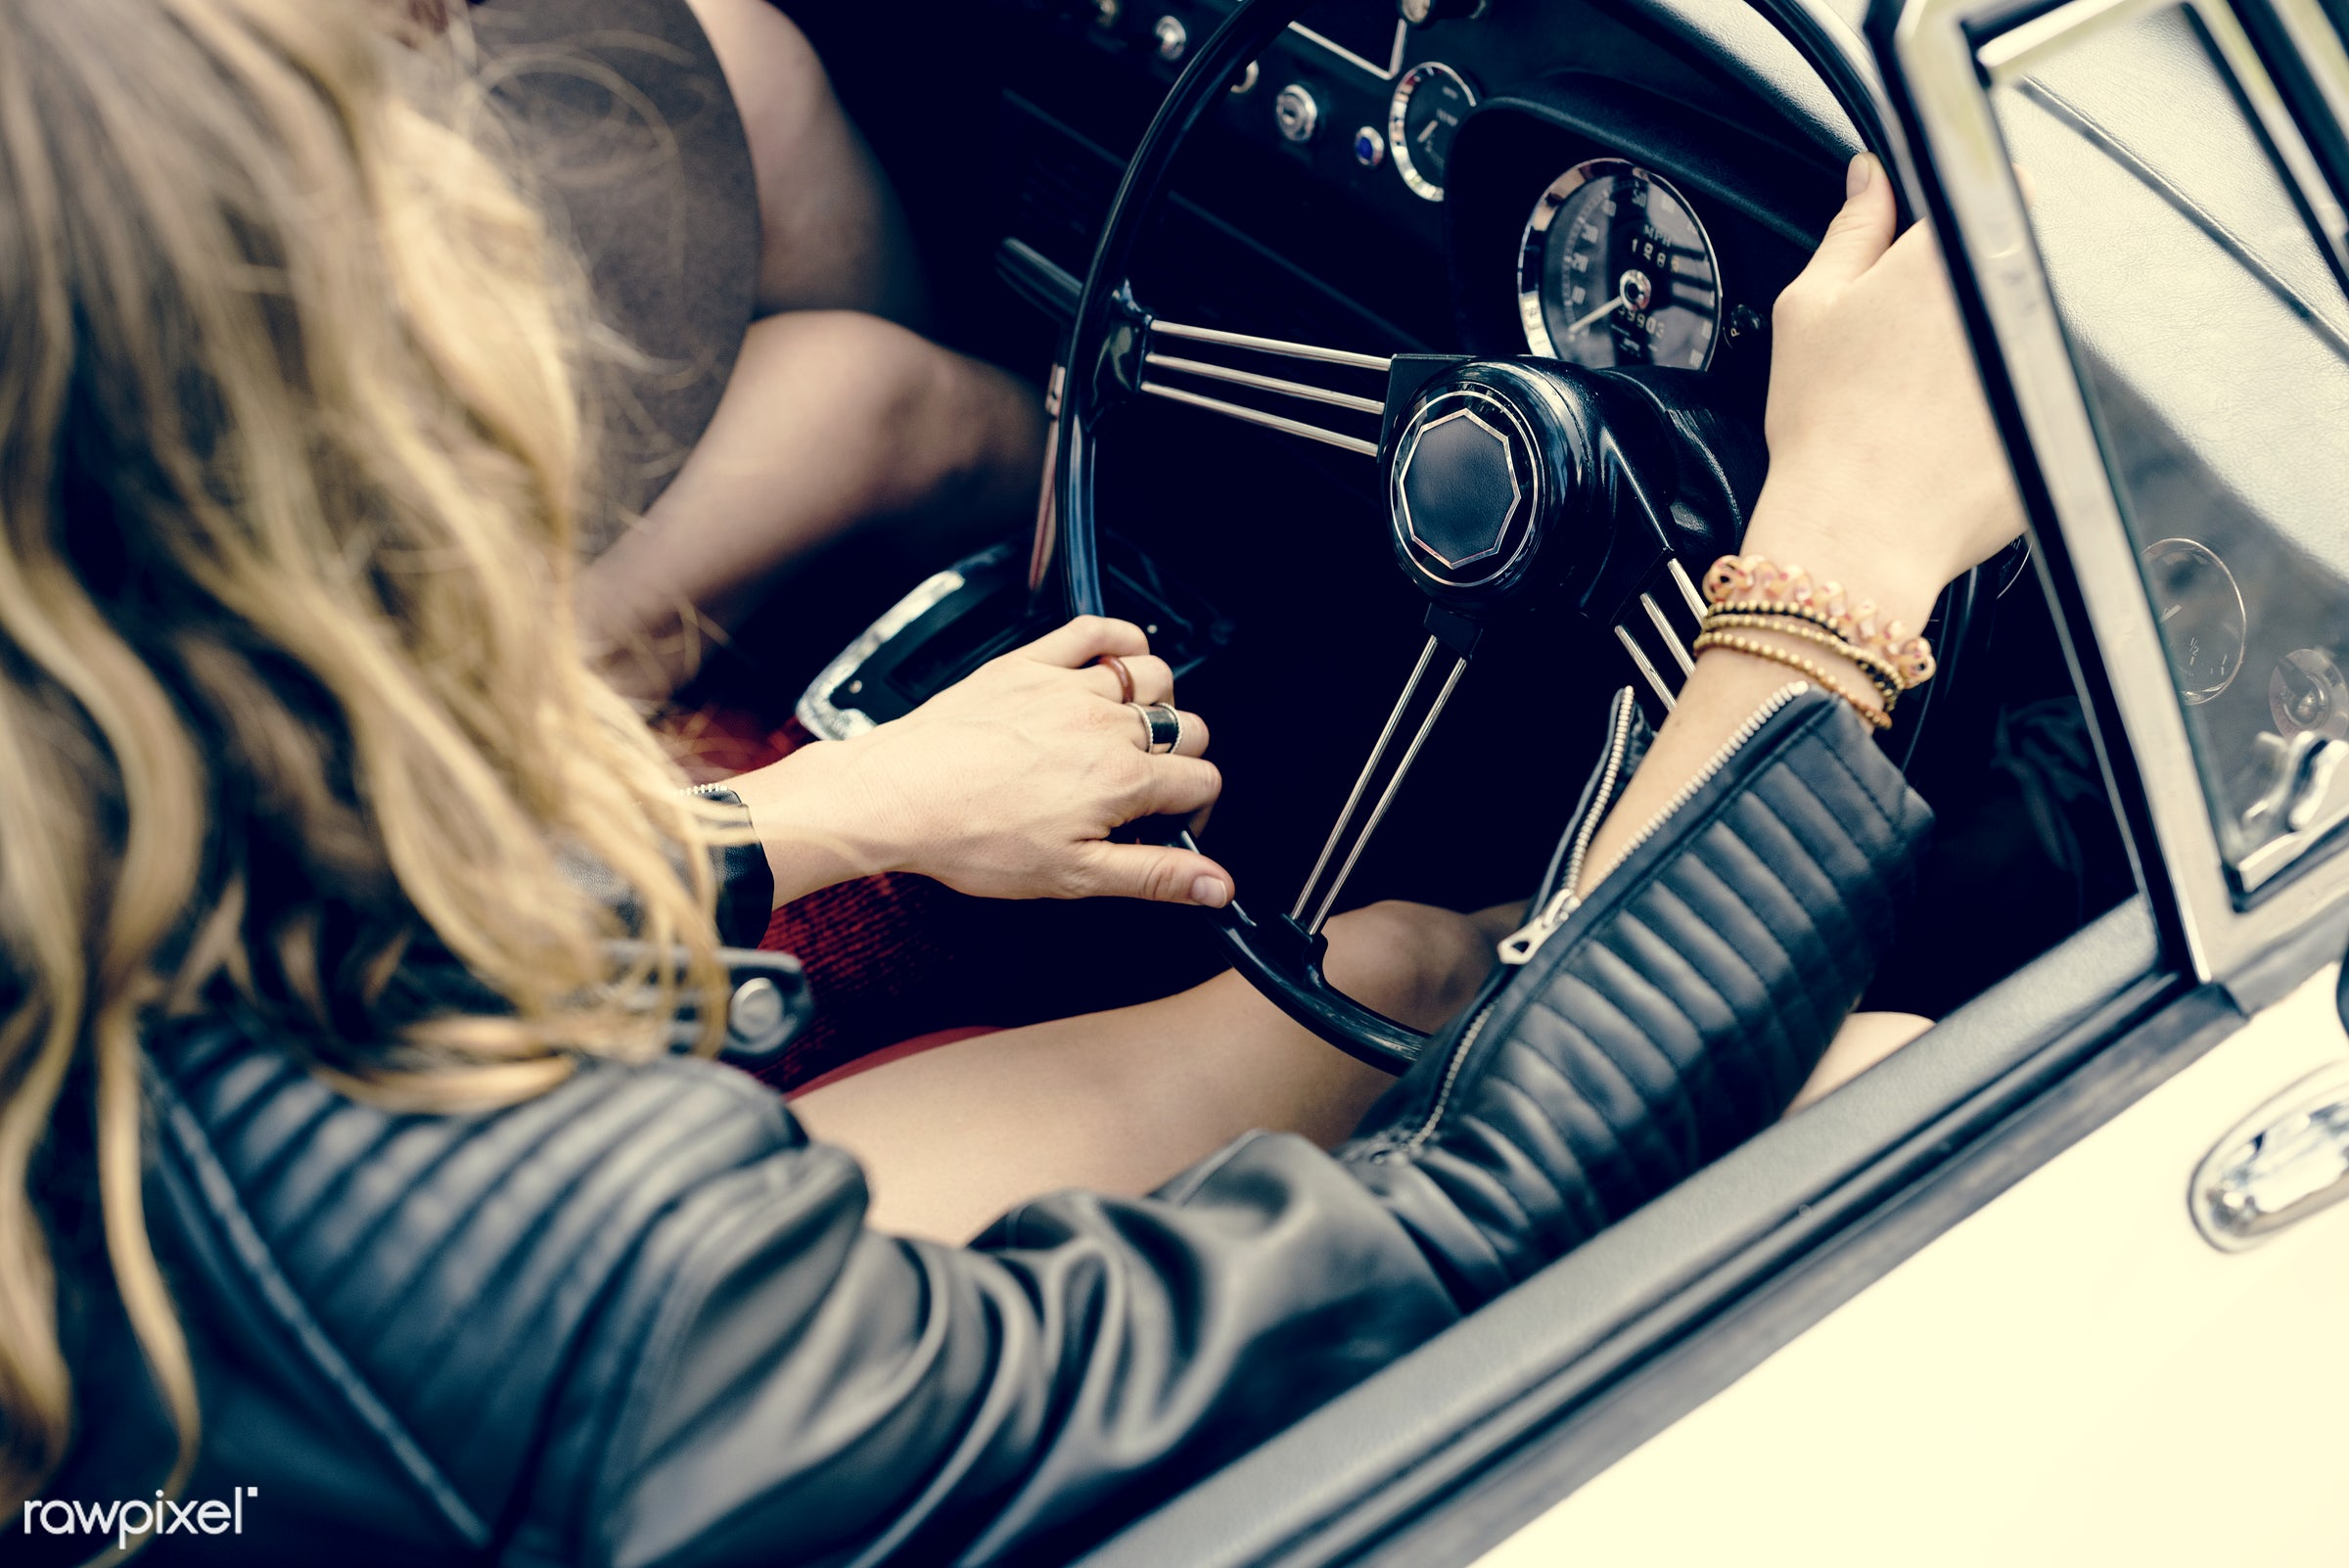 adult, adventure, attractive, automobile, beauty, car, classic, down, drive, driving, female, hippy, hipster, journey,...